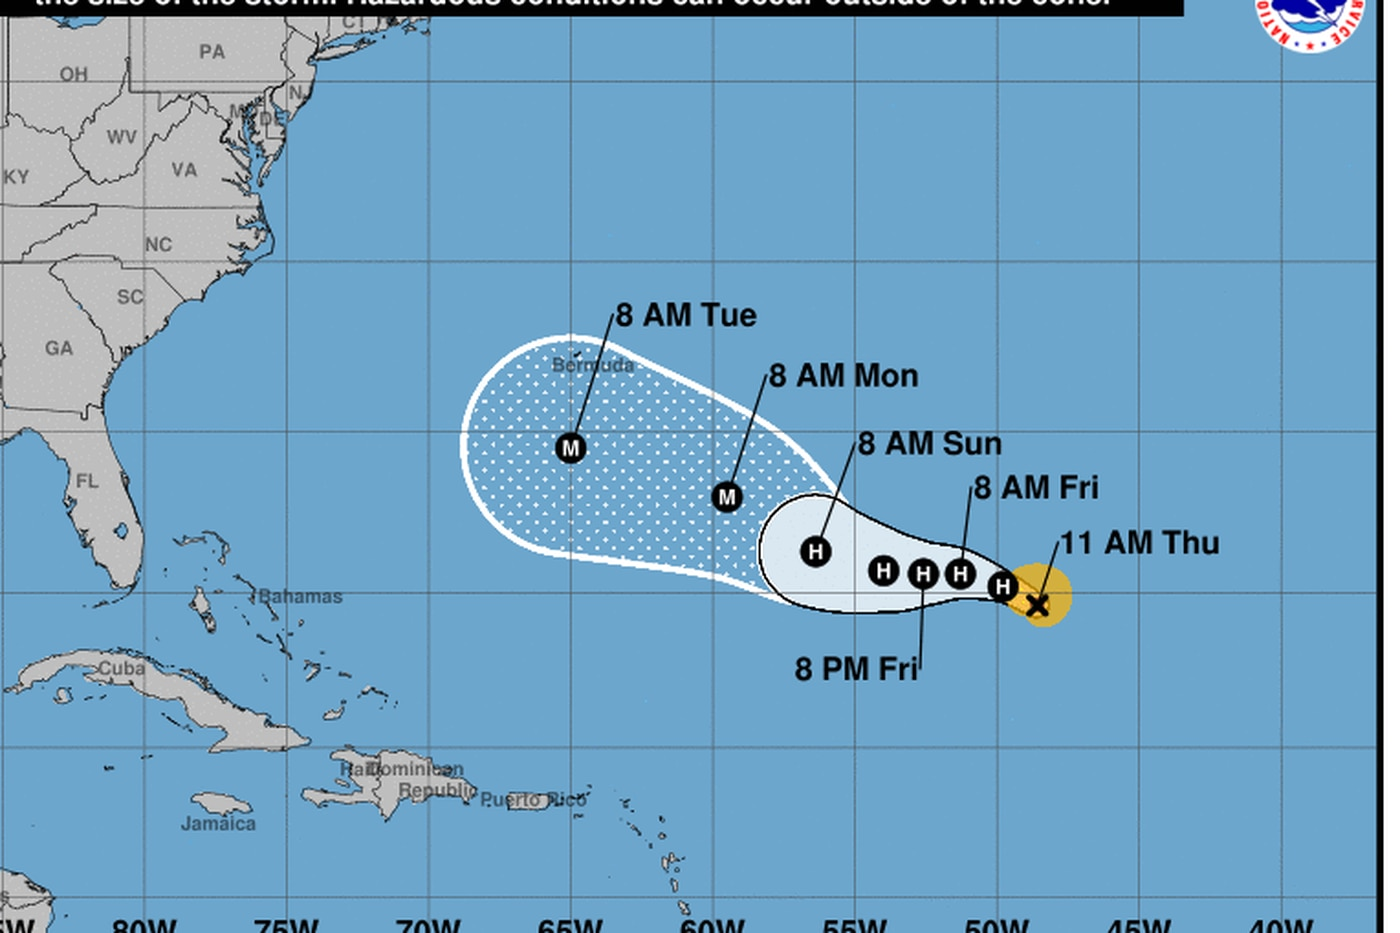 Atlantic Heating Up With Two Tropical Storms, Disturbance